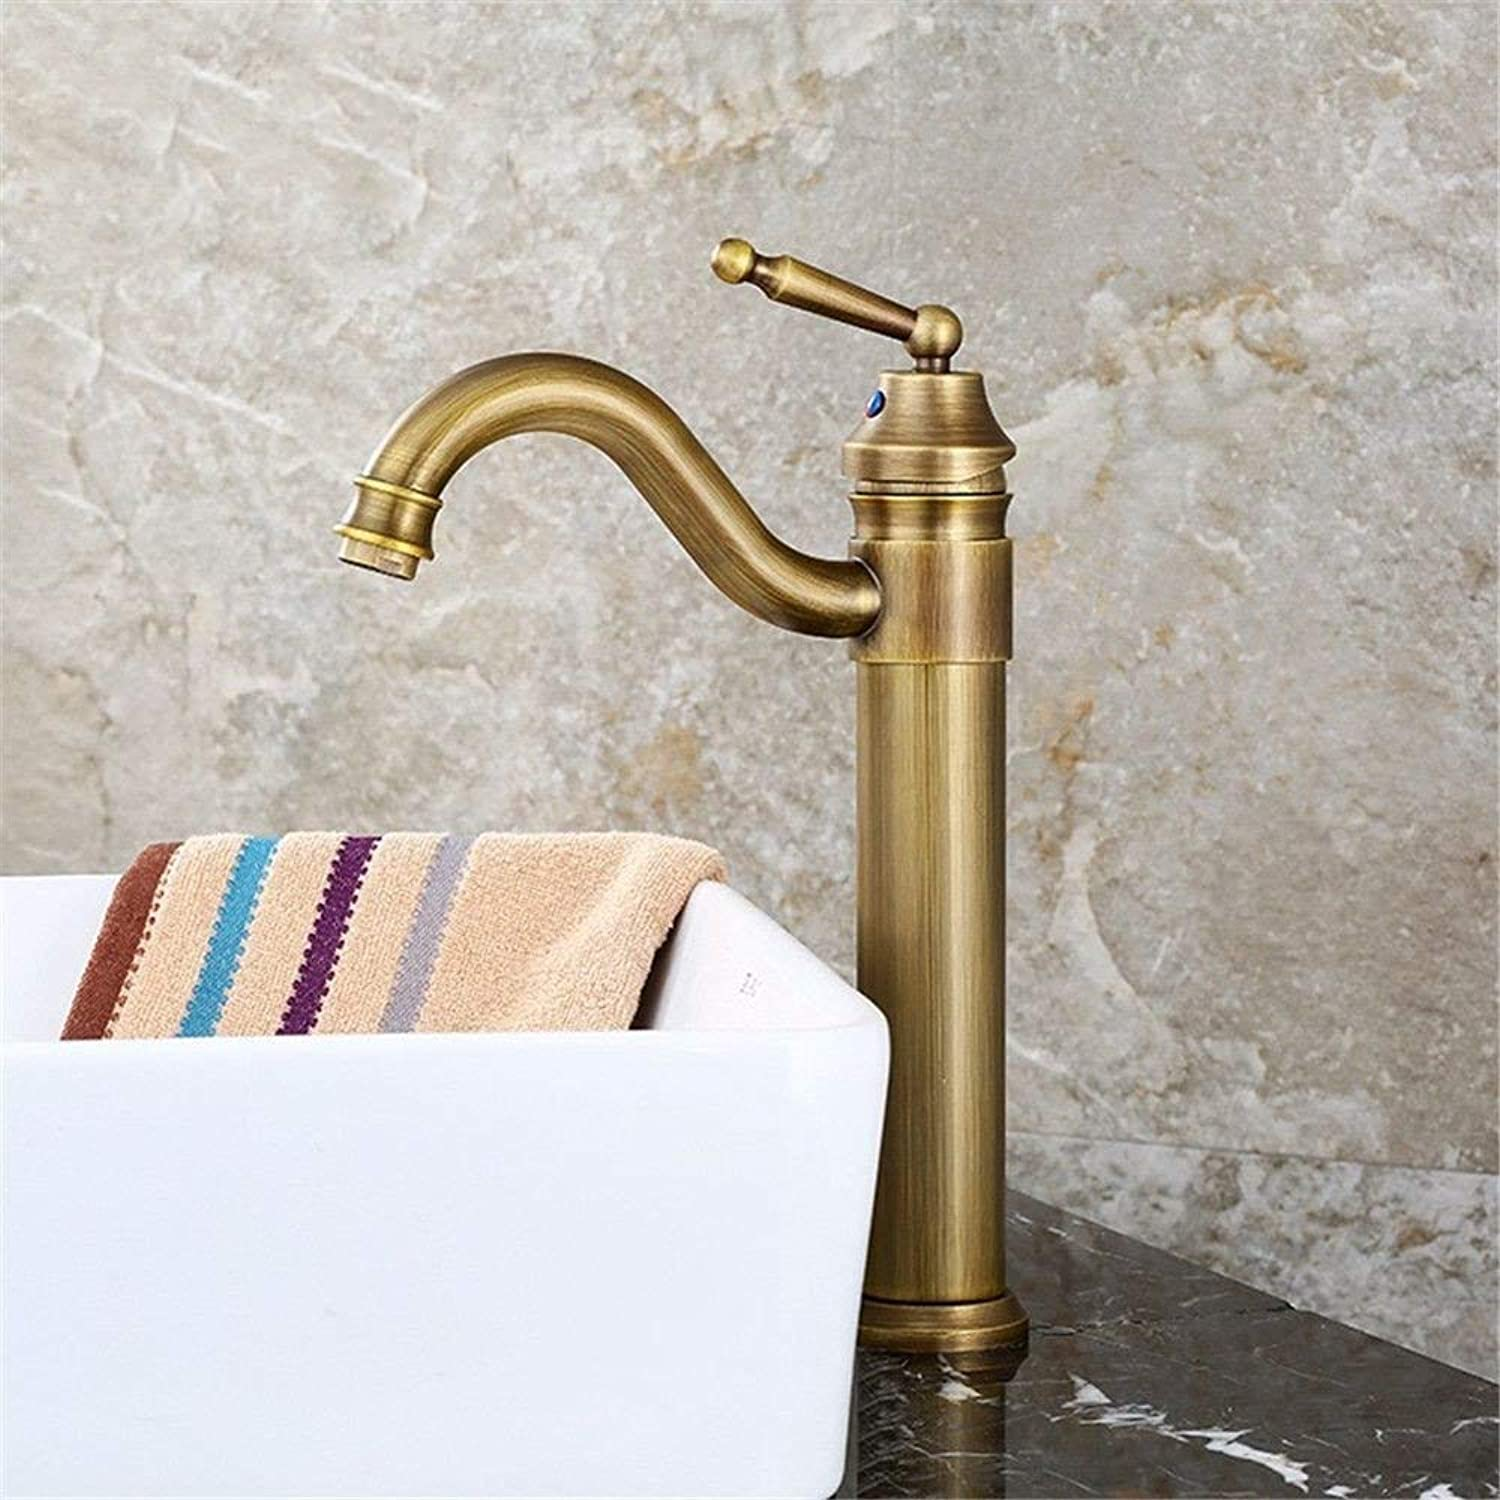 Copper faucet hot and cold water single handle double control redary faucet (color   -, Size   -)